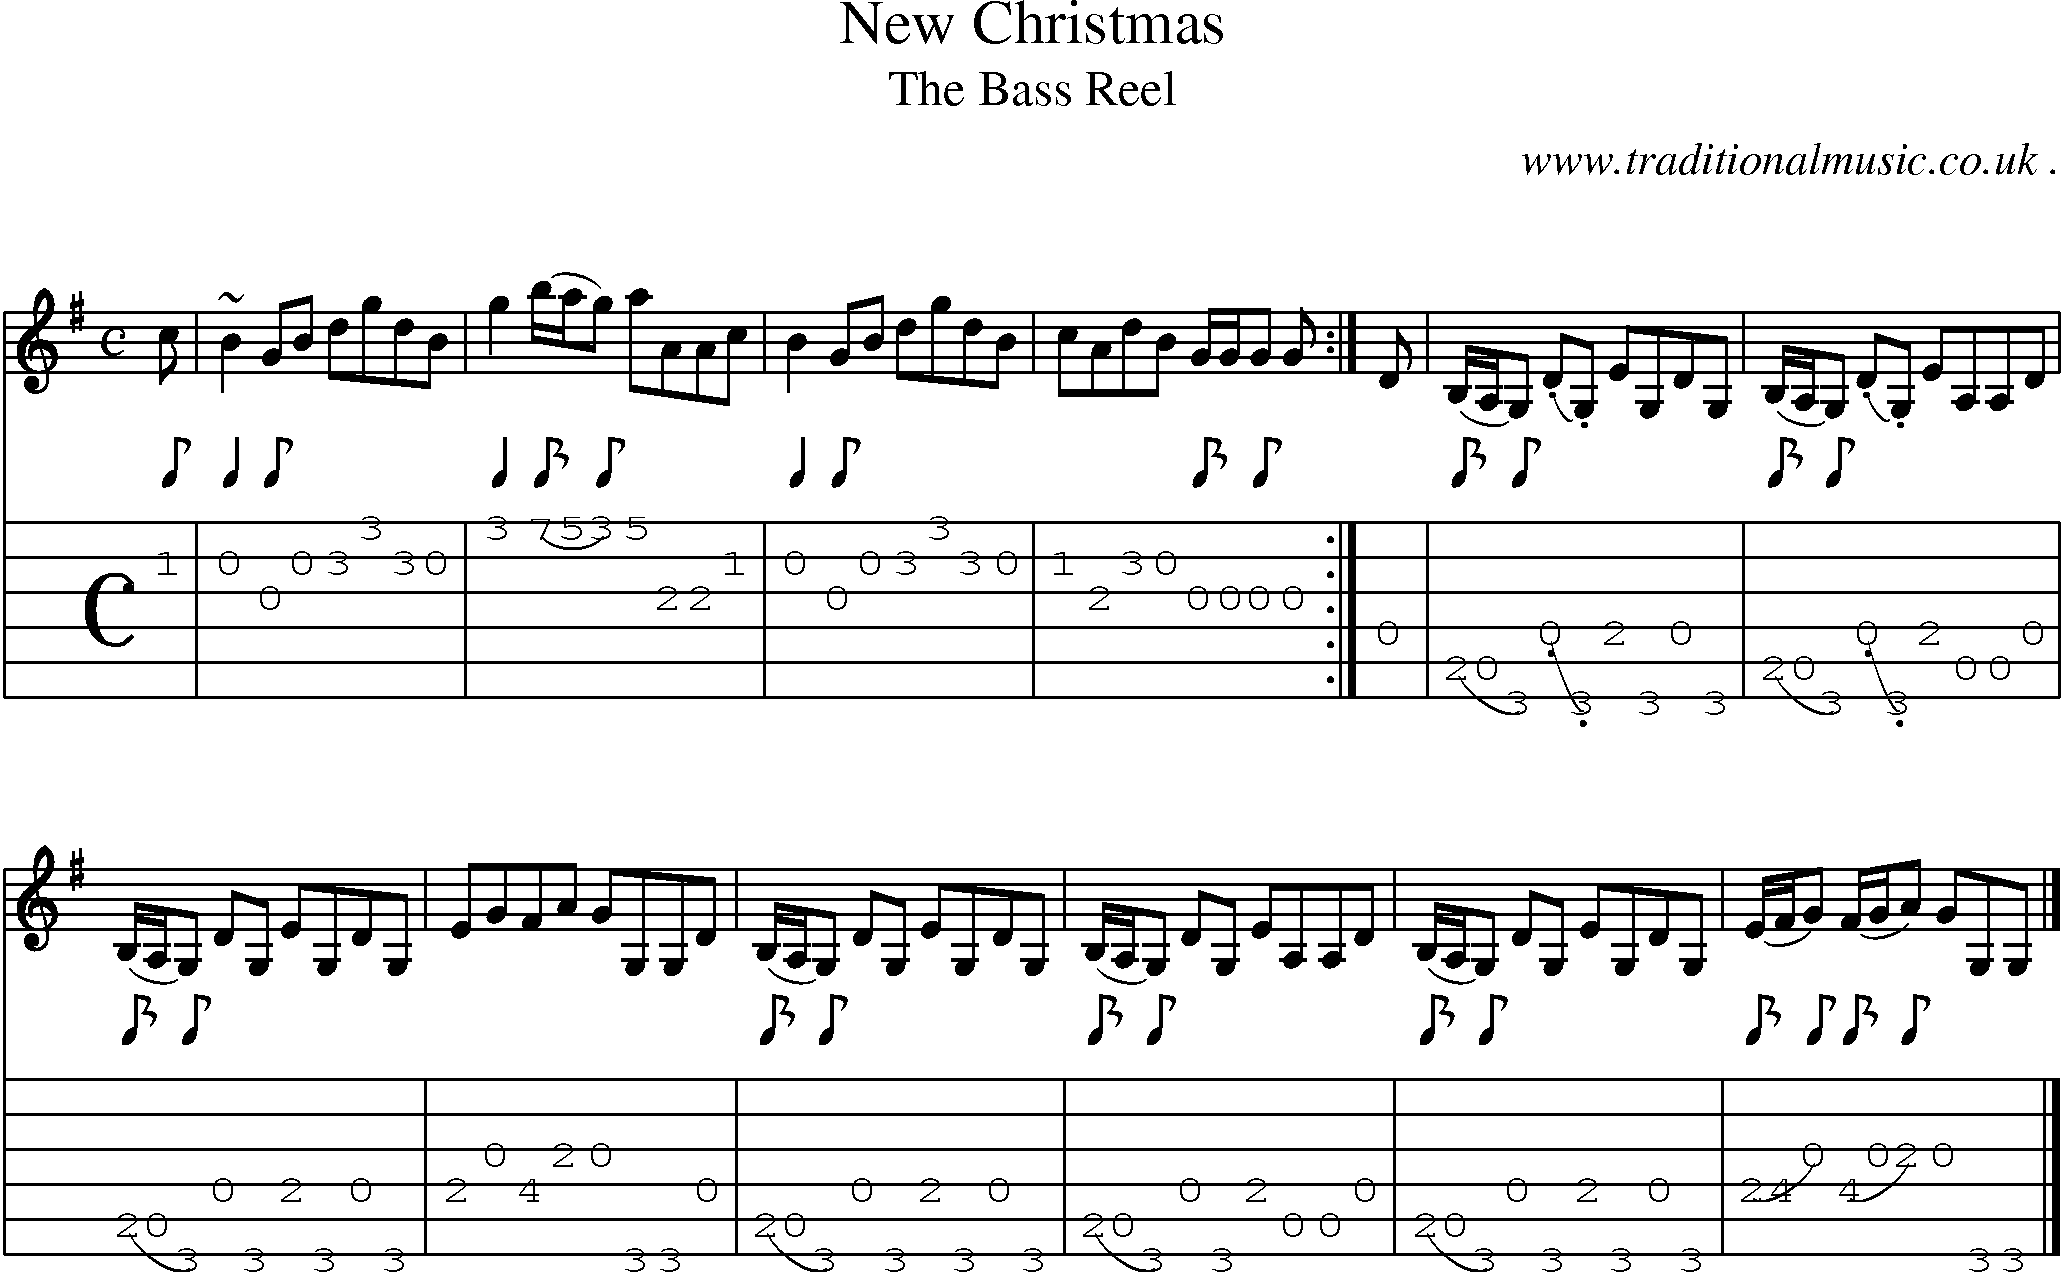 Scottish Tune, Sheetmusic, Midi, Mp3, Guitar chords u0026 tabs: New Christmas